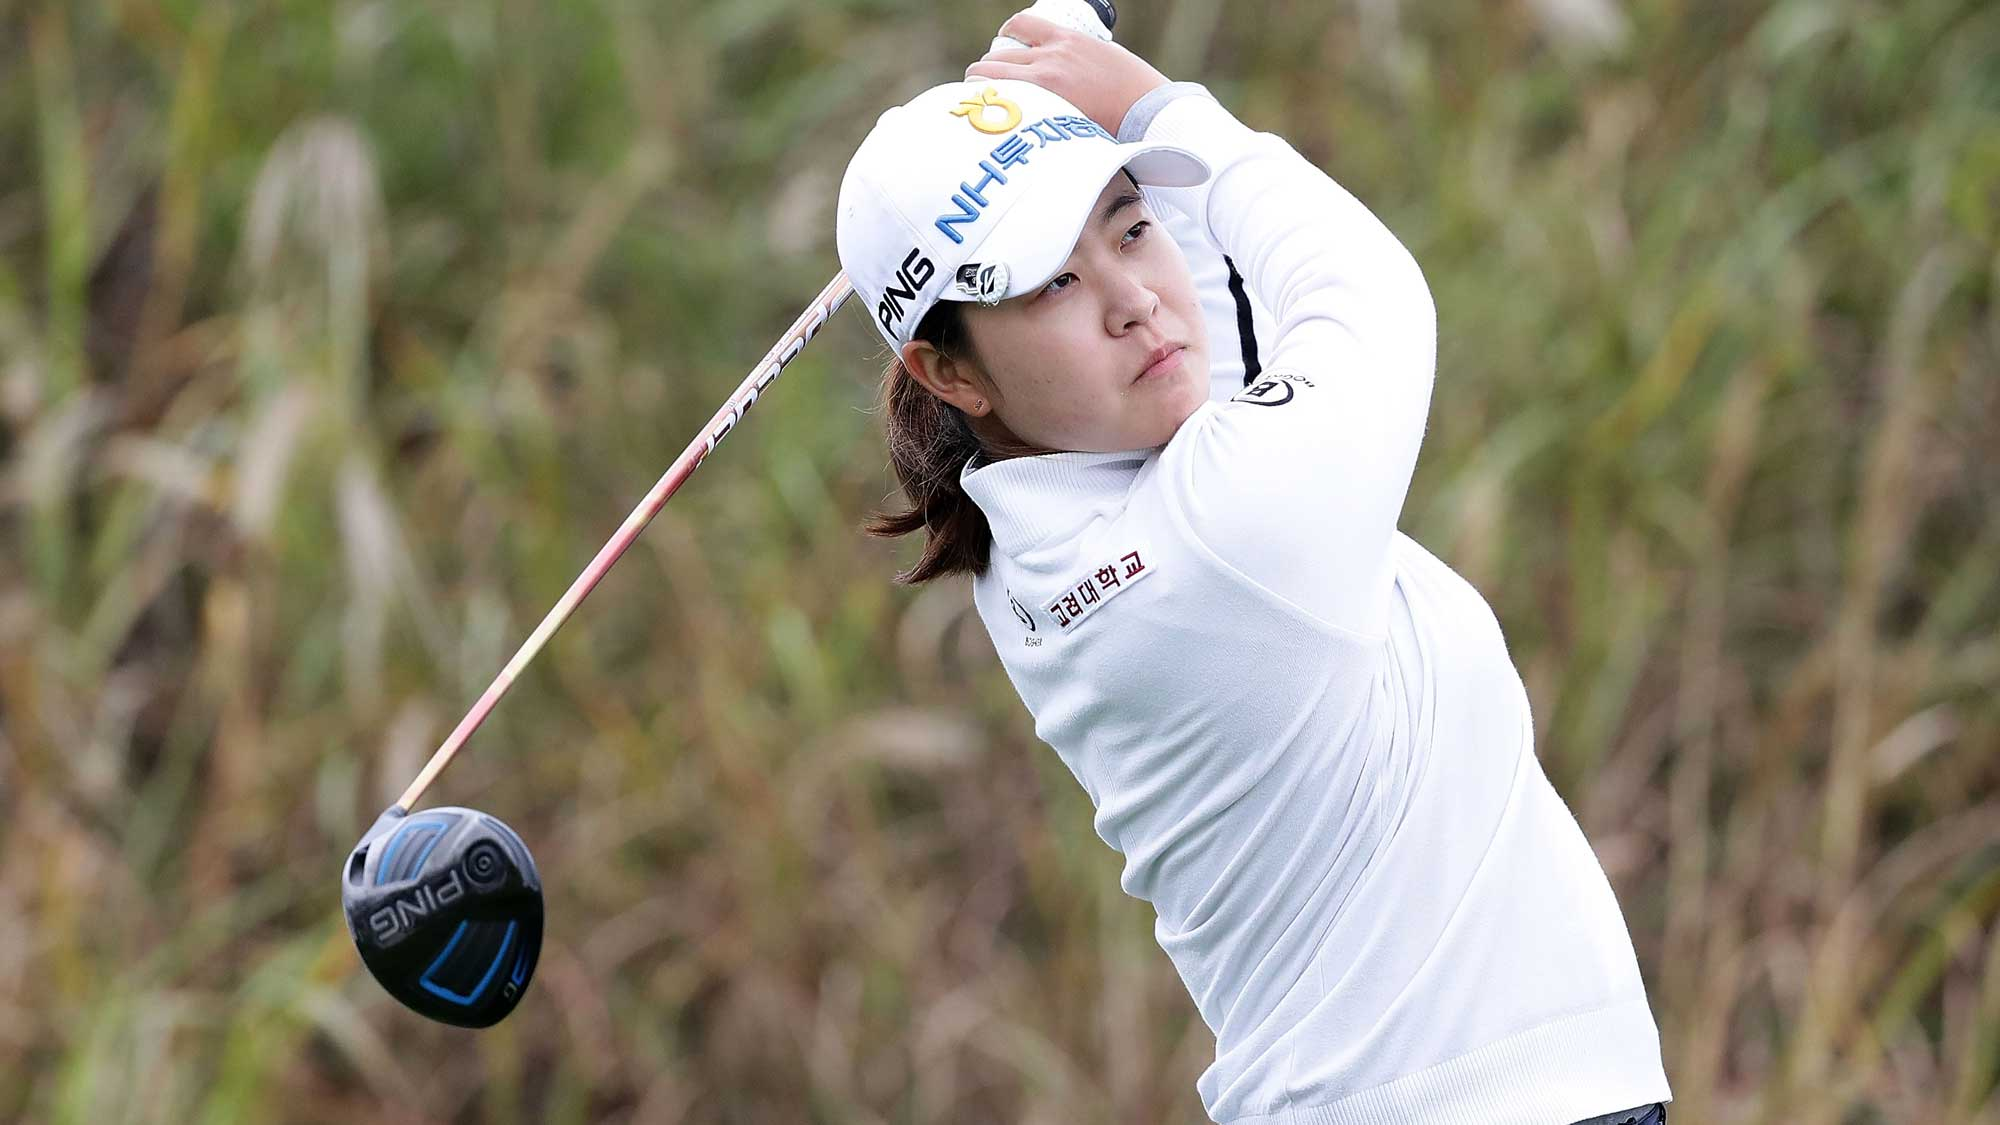 Min-Ji Park of South Korea plays a tee shot on the 9th hole during the first round of the LPGA KEB Hana Bank Championship